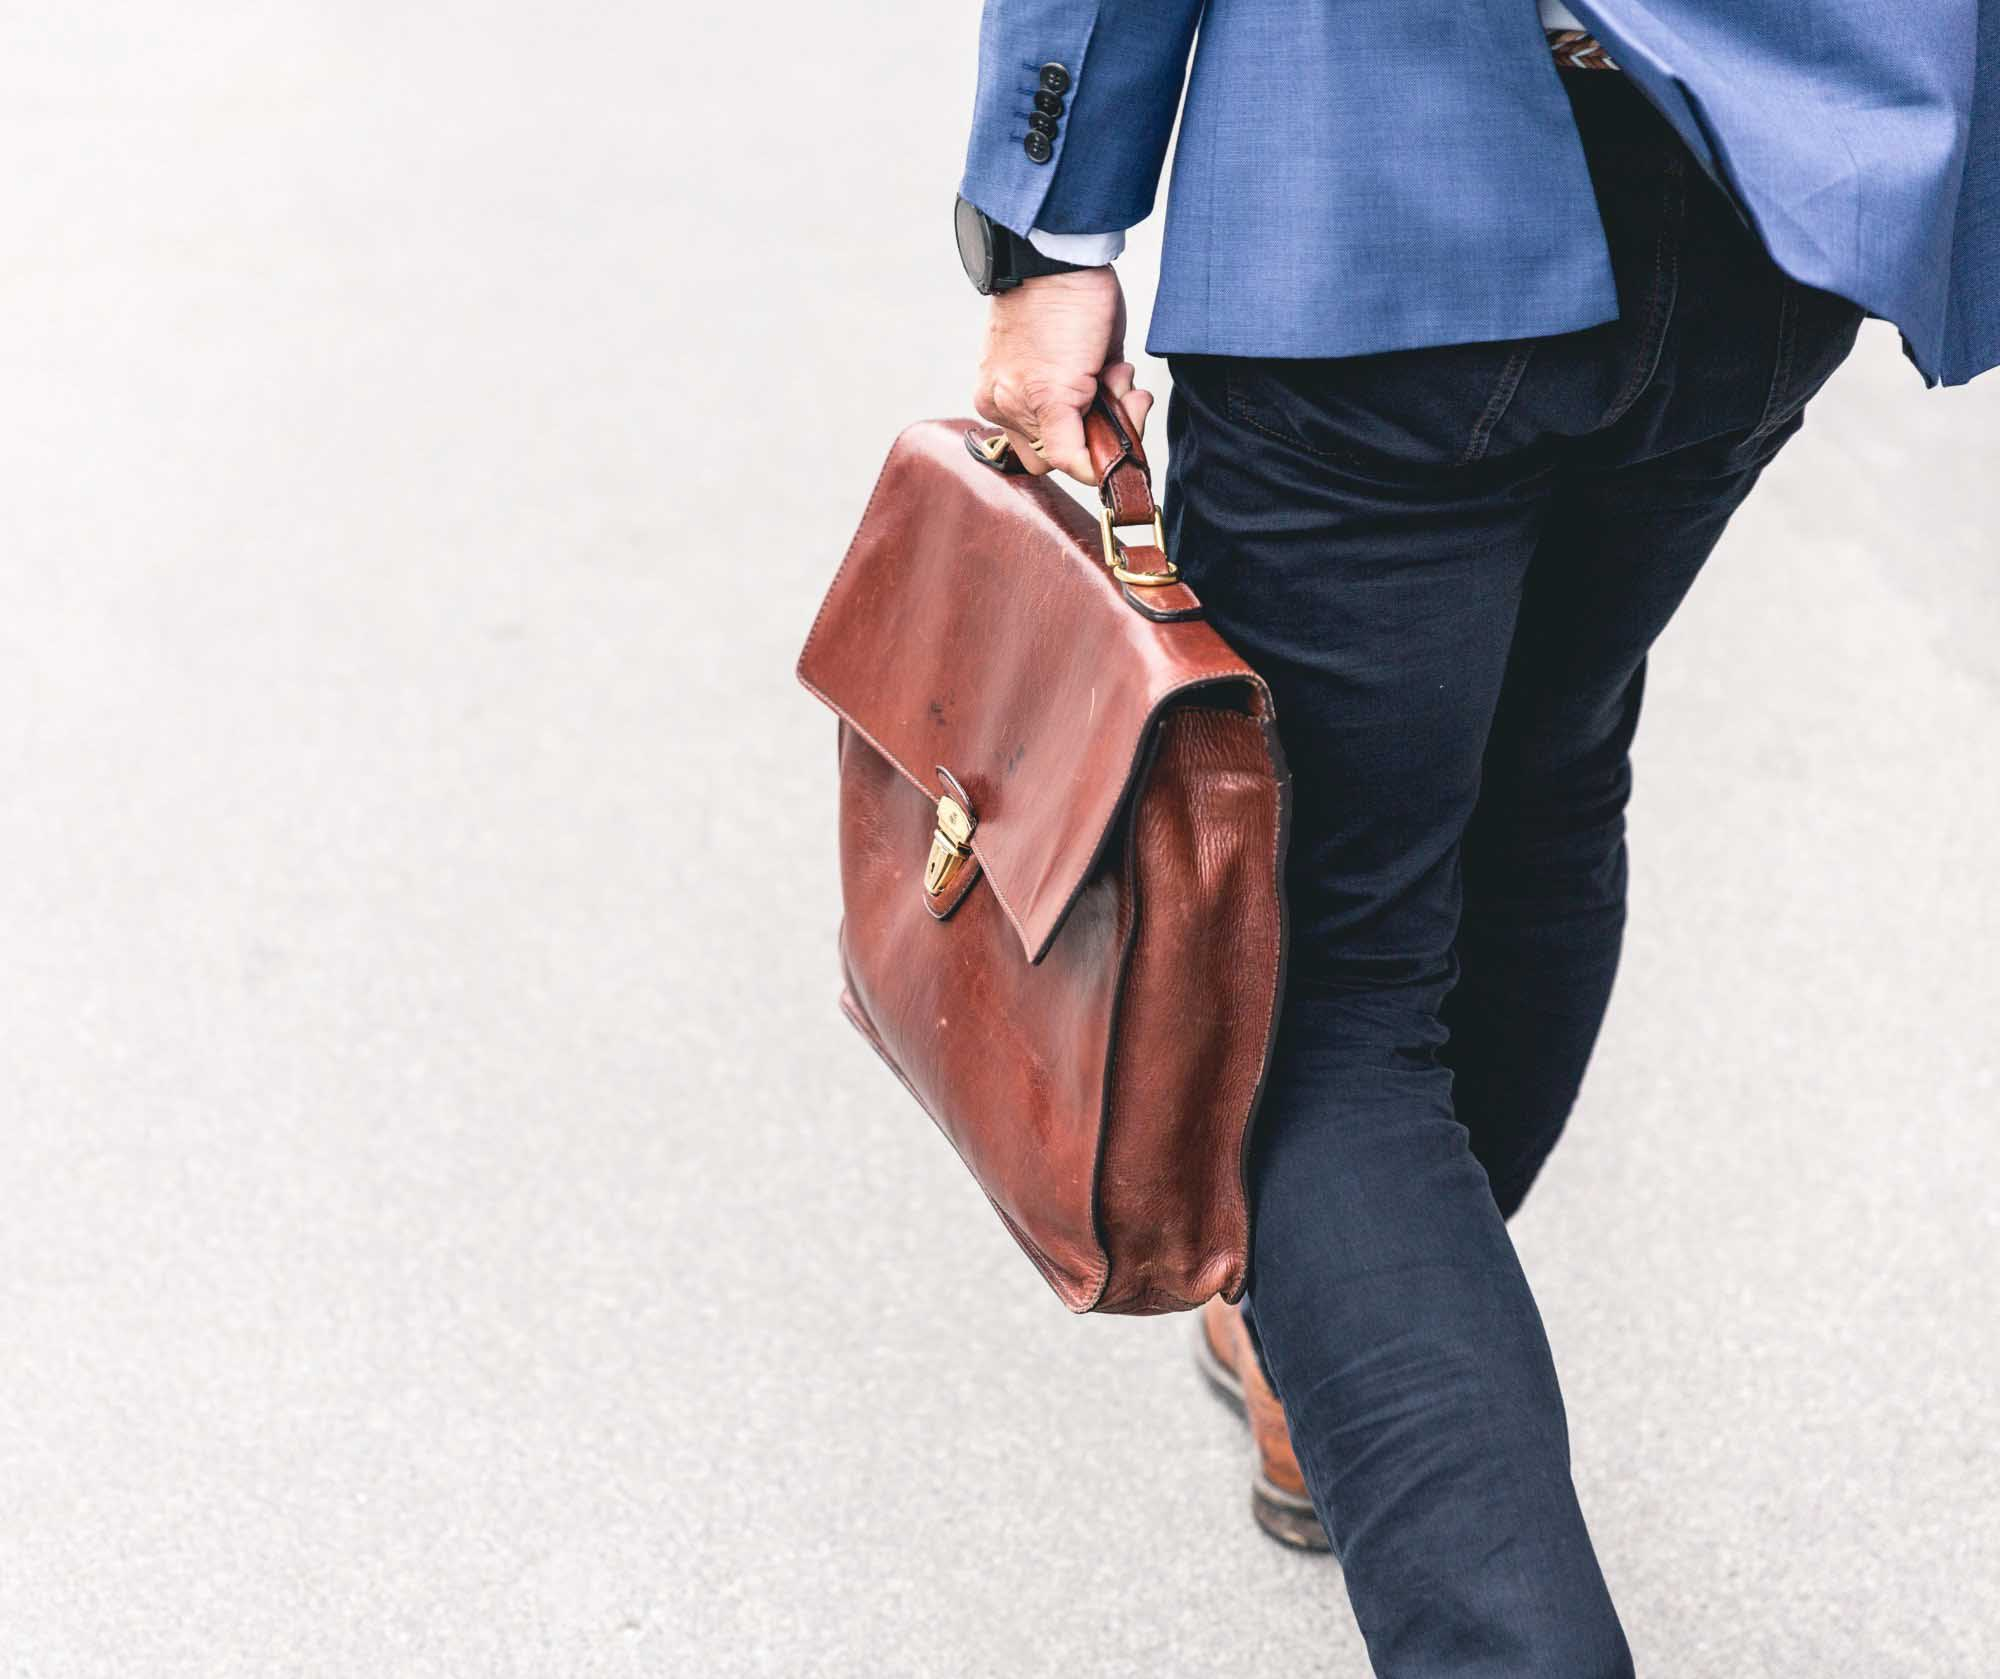 a man walking with a briefcase